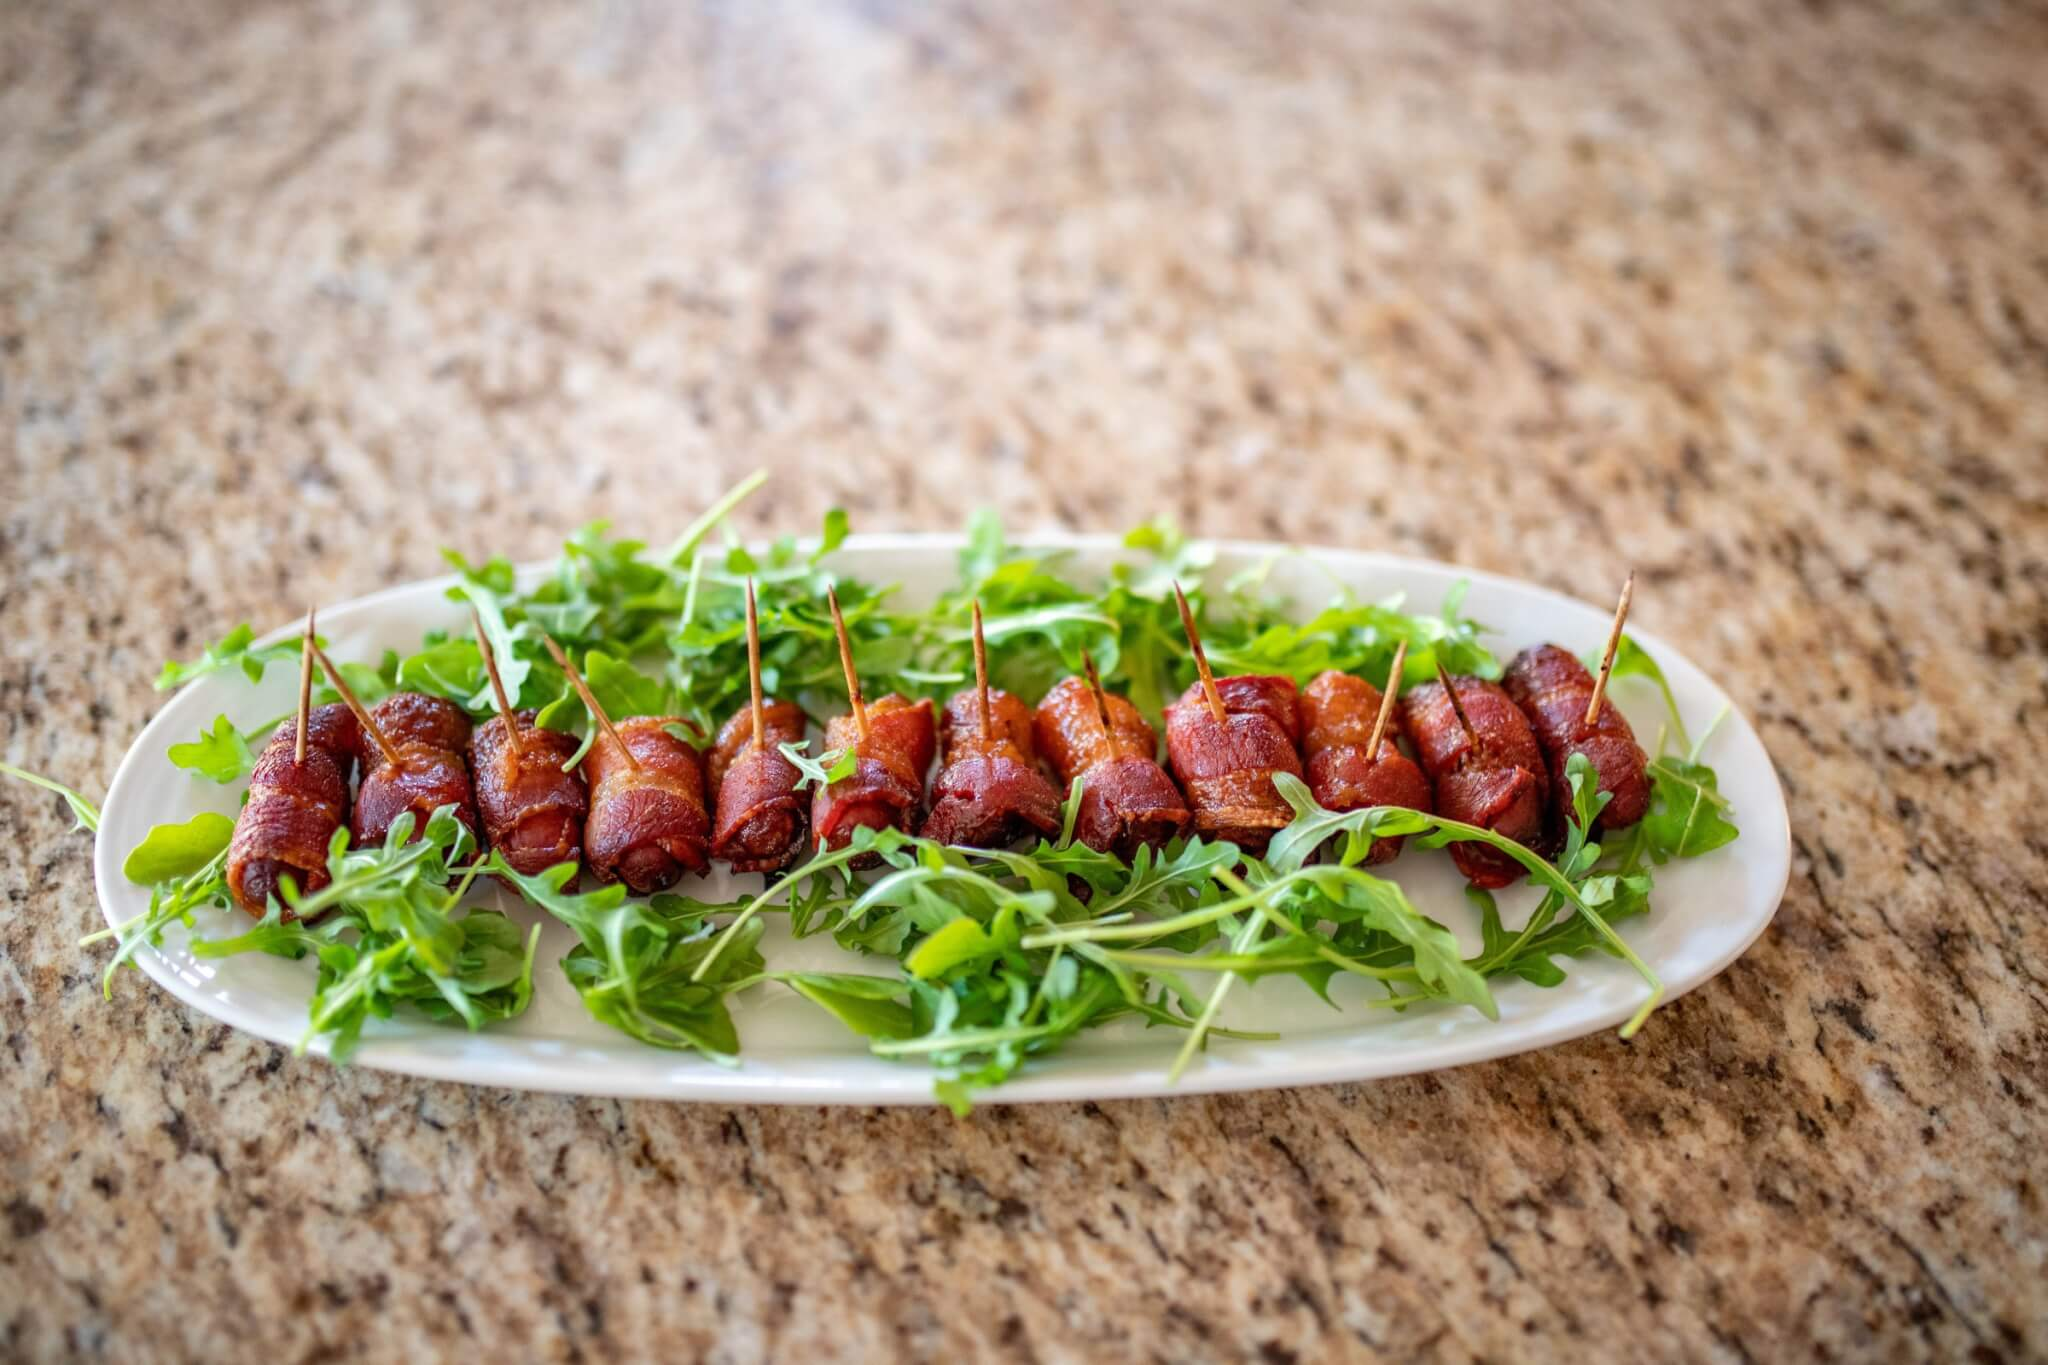 bacon wrapped smokies with brown sugar, game day appetizer, appetizer ideas, easy appetizers, bacon appetizer, smokies appetizer, football party appetizer, superbowl appetizers